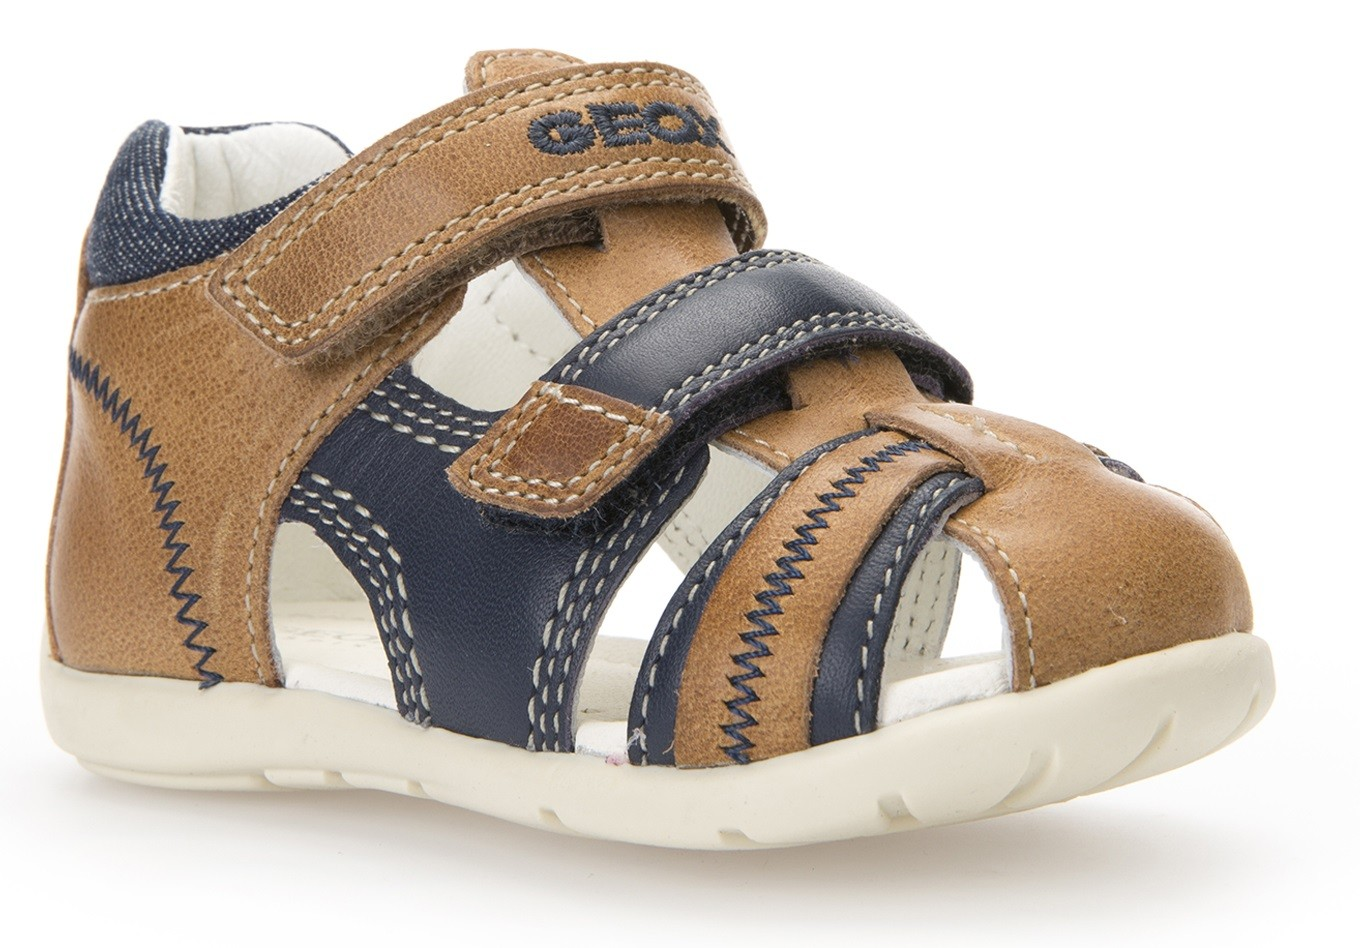 Geox Kaytan Caramel Navy Sandals Geox Kids Shoes